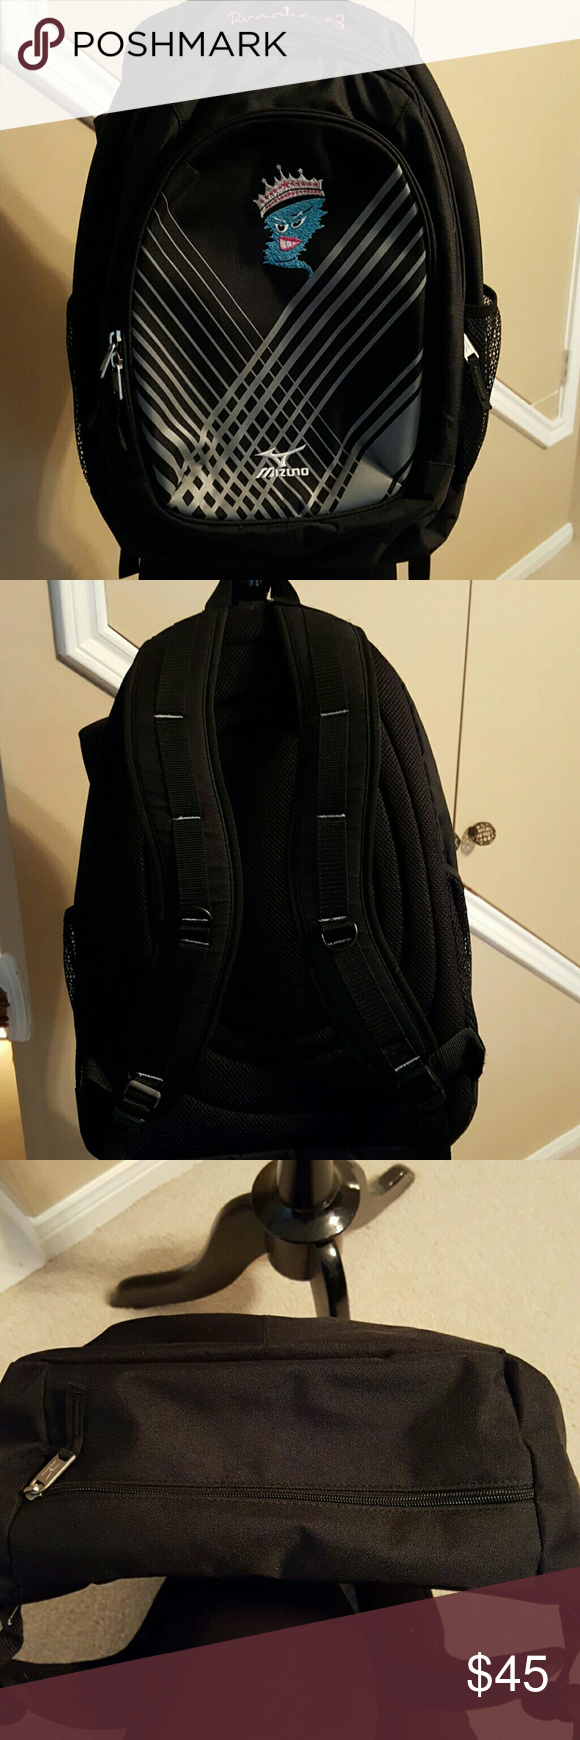 Mizuno Backpack Best School Bag Excellent Like New No Wear Bottom Shown In Pic 3 Engraved On Top Broo Cool School Bags School Bags Backpacks